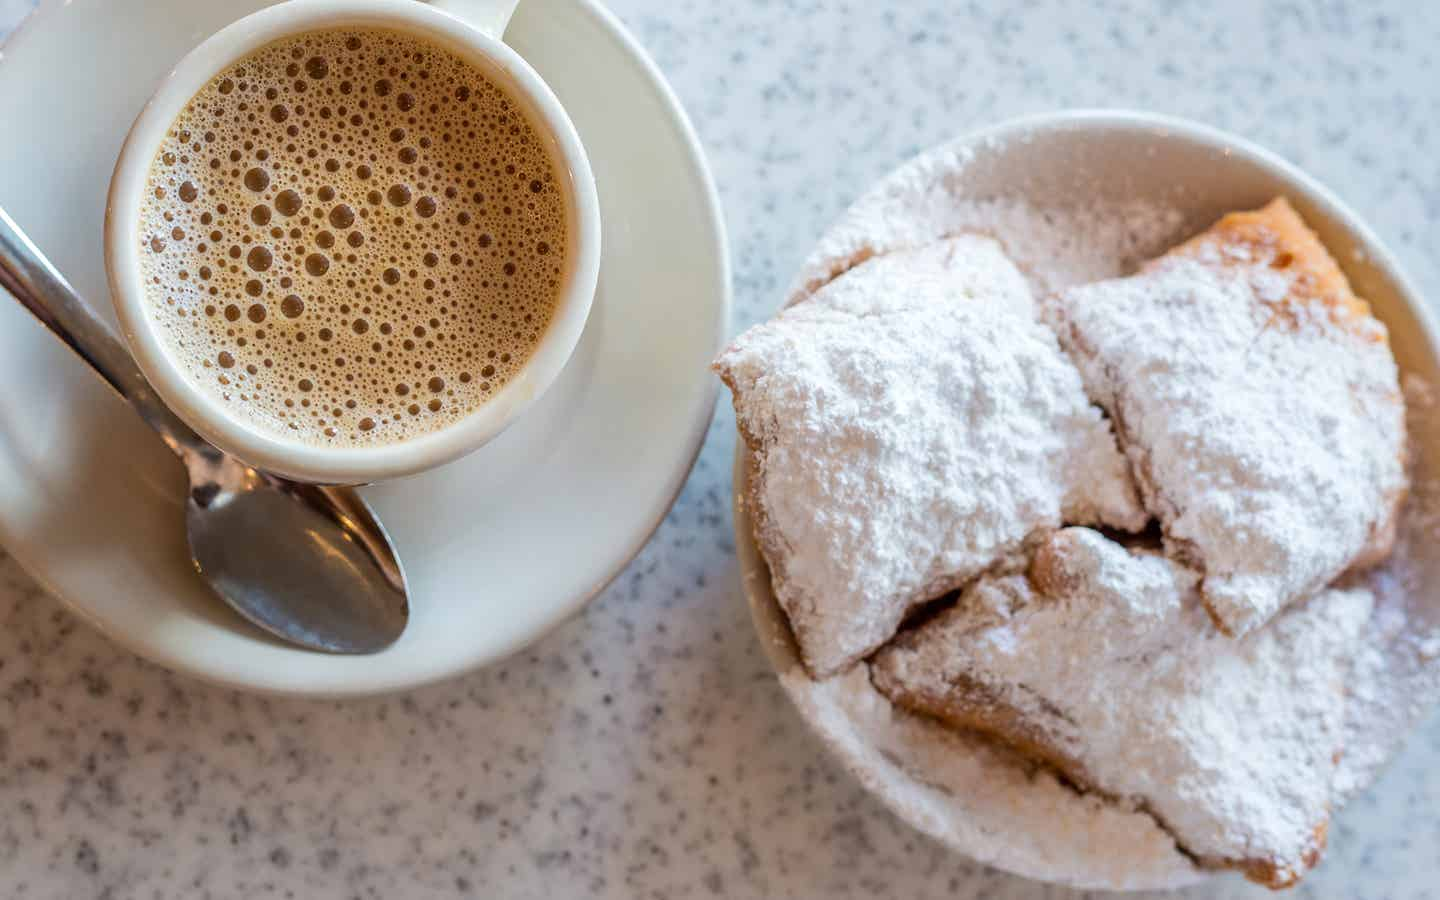 Beignets placed on a table with some coffee on white plates.